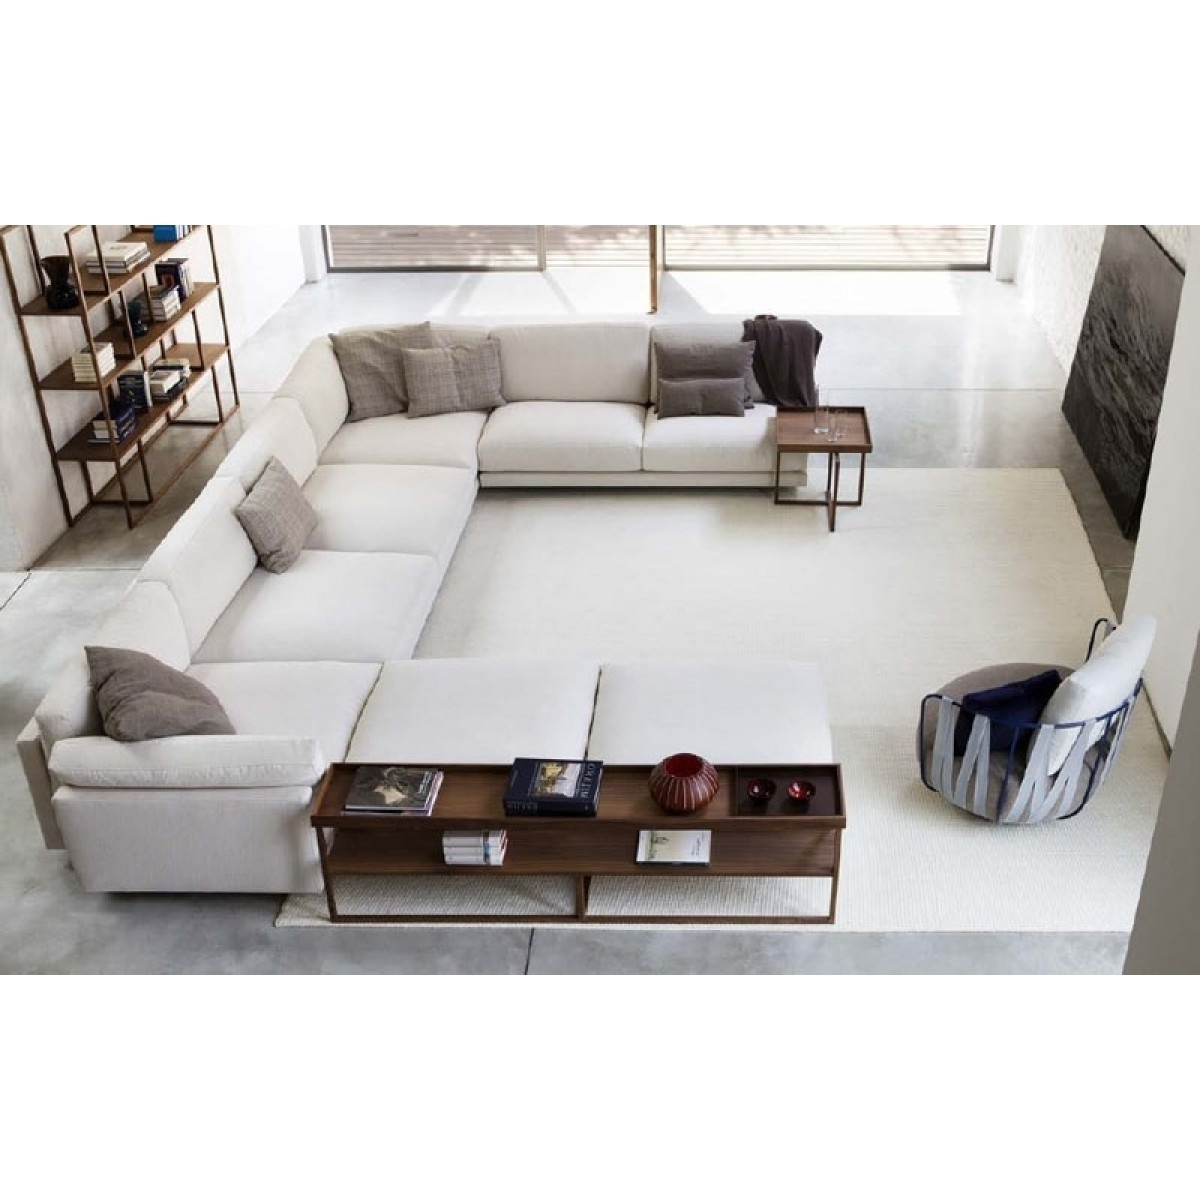 Sofa : Buy Sofa Love Couch Furniture Extra Long Sectional Sofa Intended For Current Long Modern Sofas (View 18 of 20)